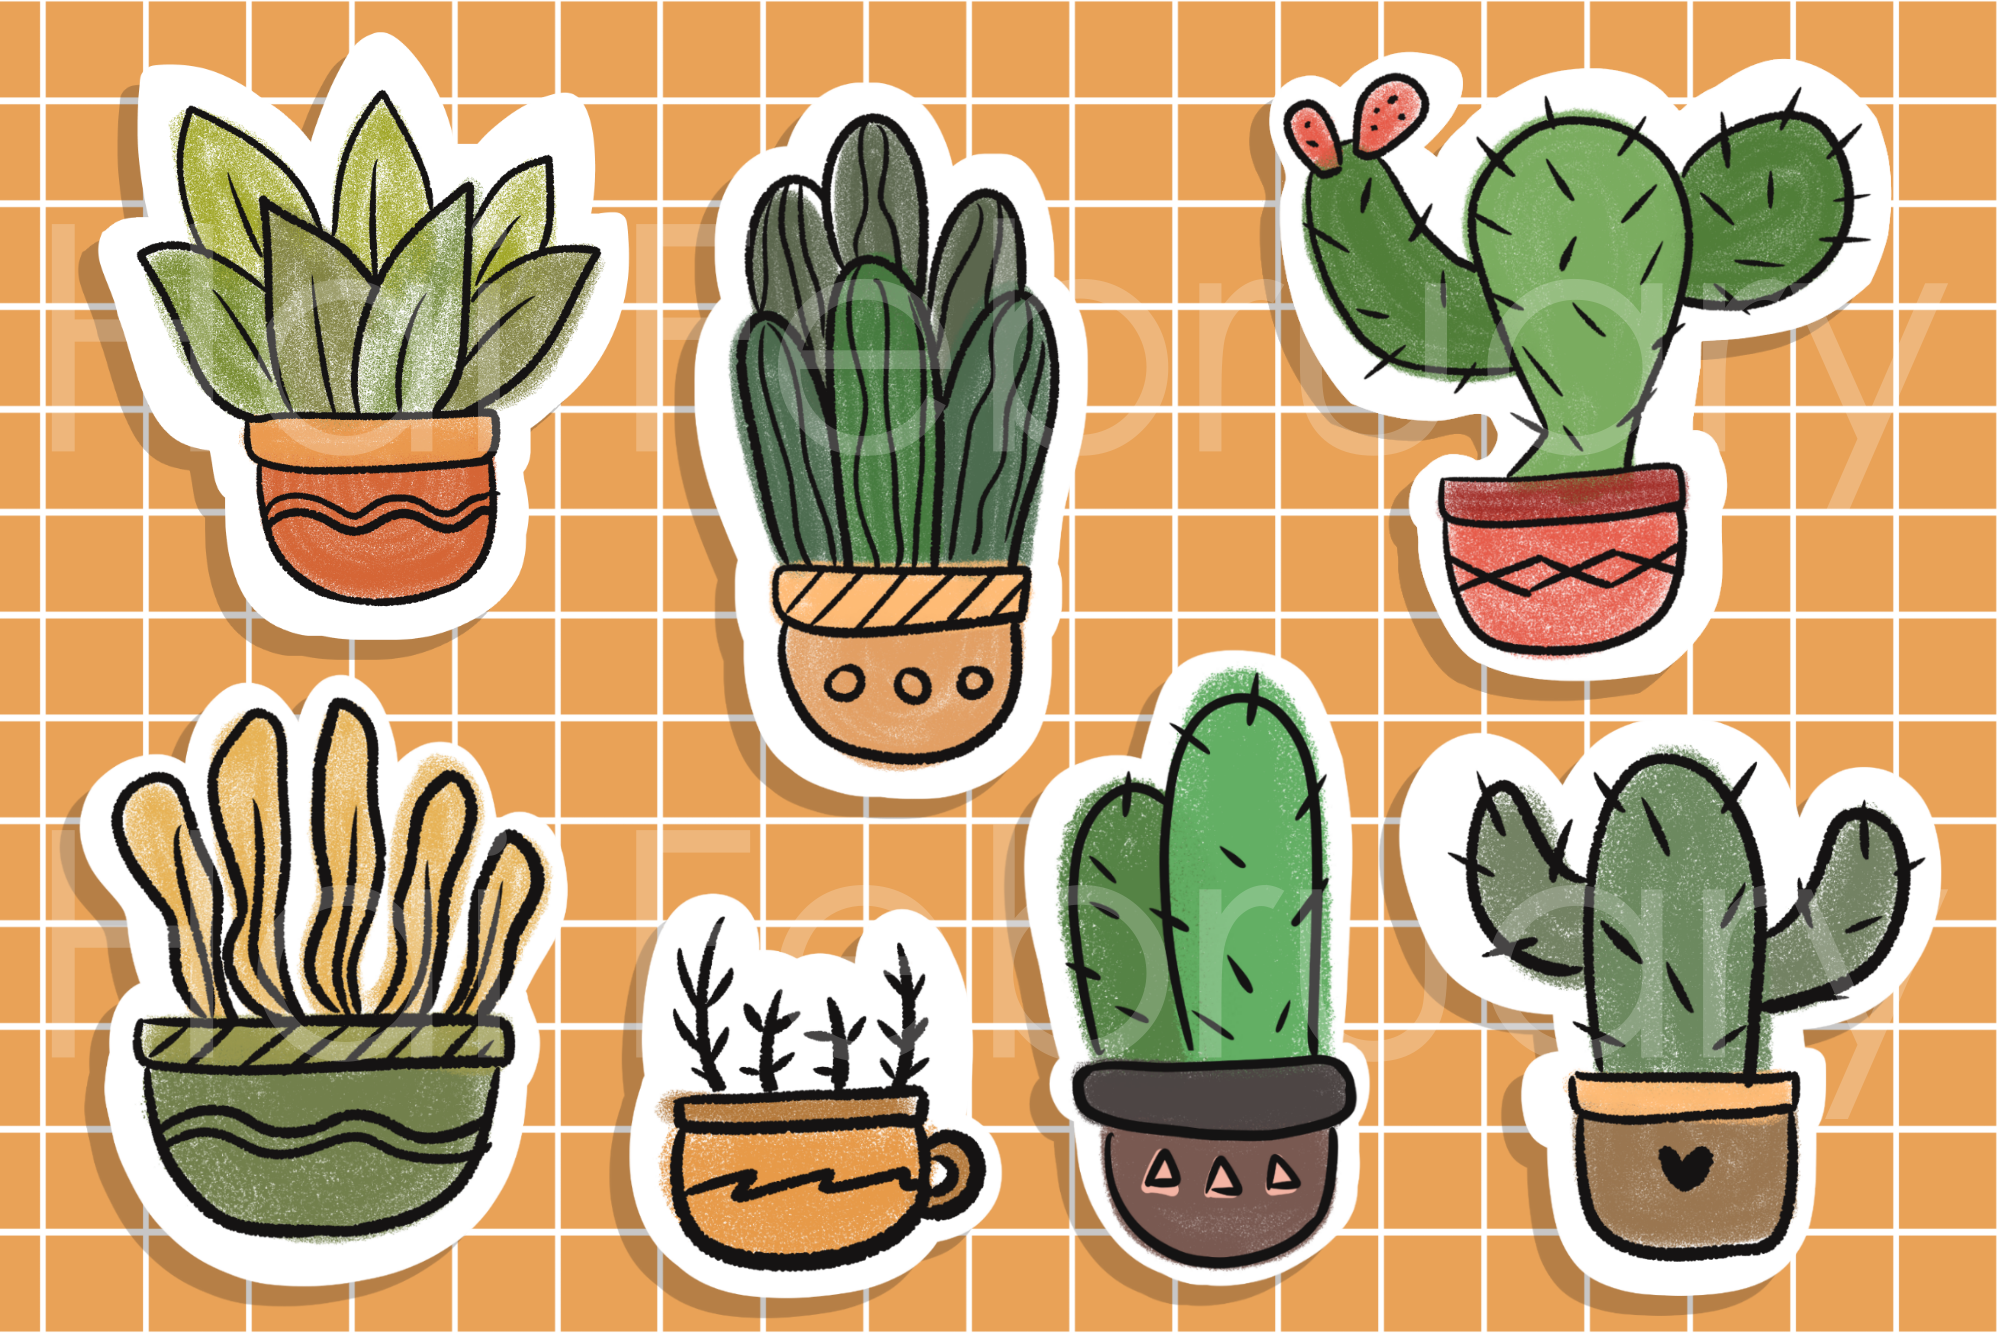 Cute Cactus Succulent Stickers Digital Graphic By Haifebruary Creative Fabrica